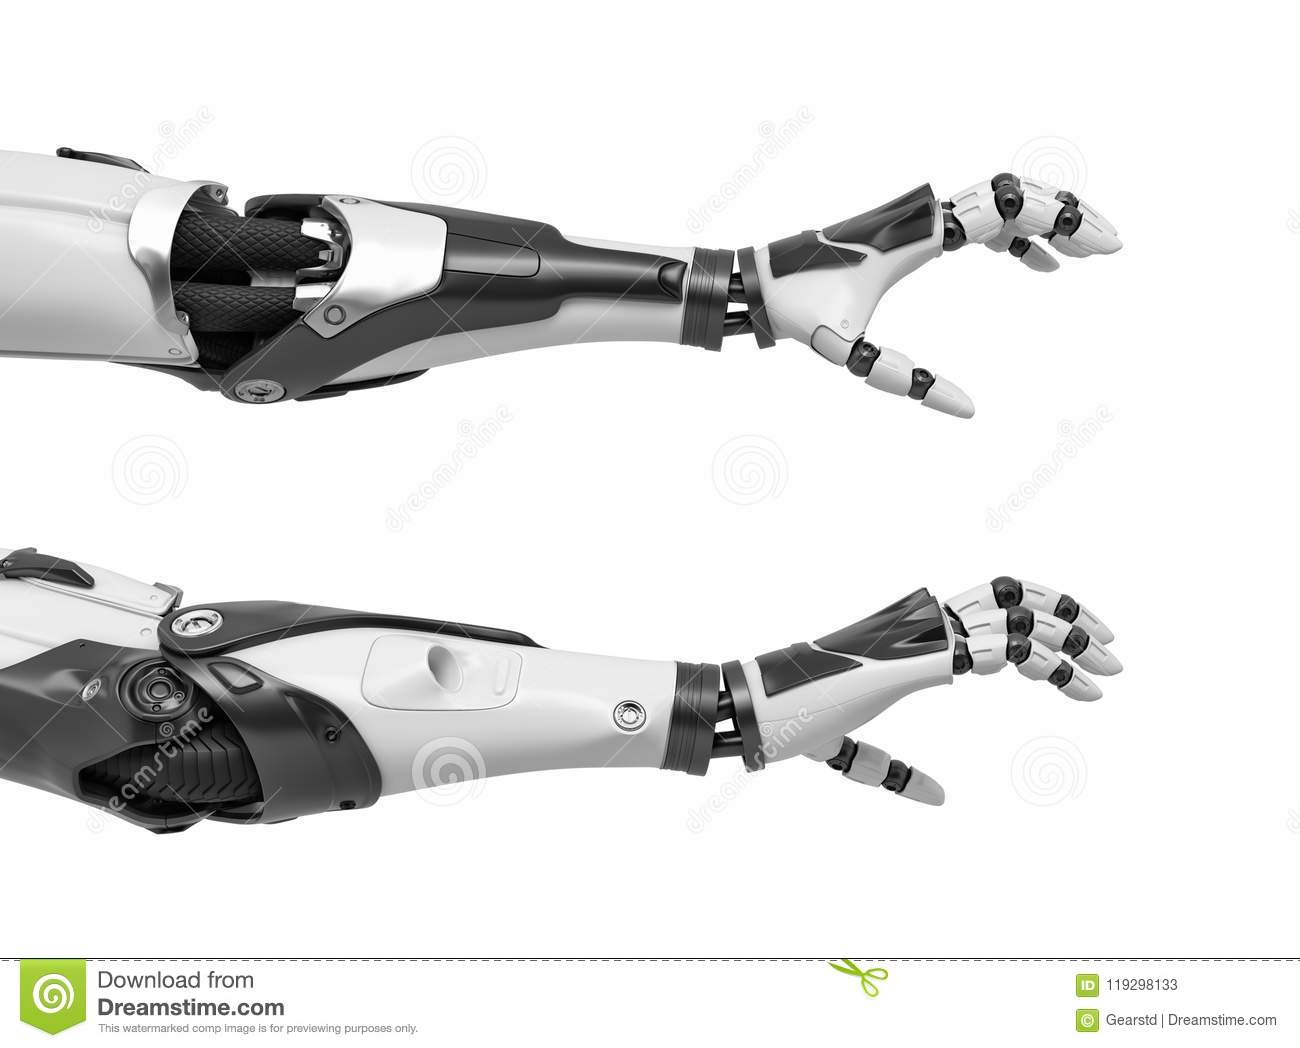 3d rendering of two robot arms with hand fingers in grabbing motion on white background.